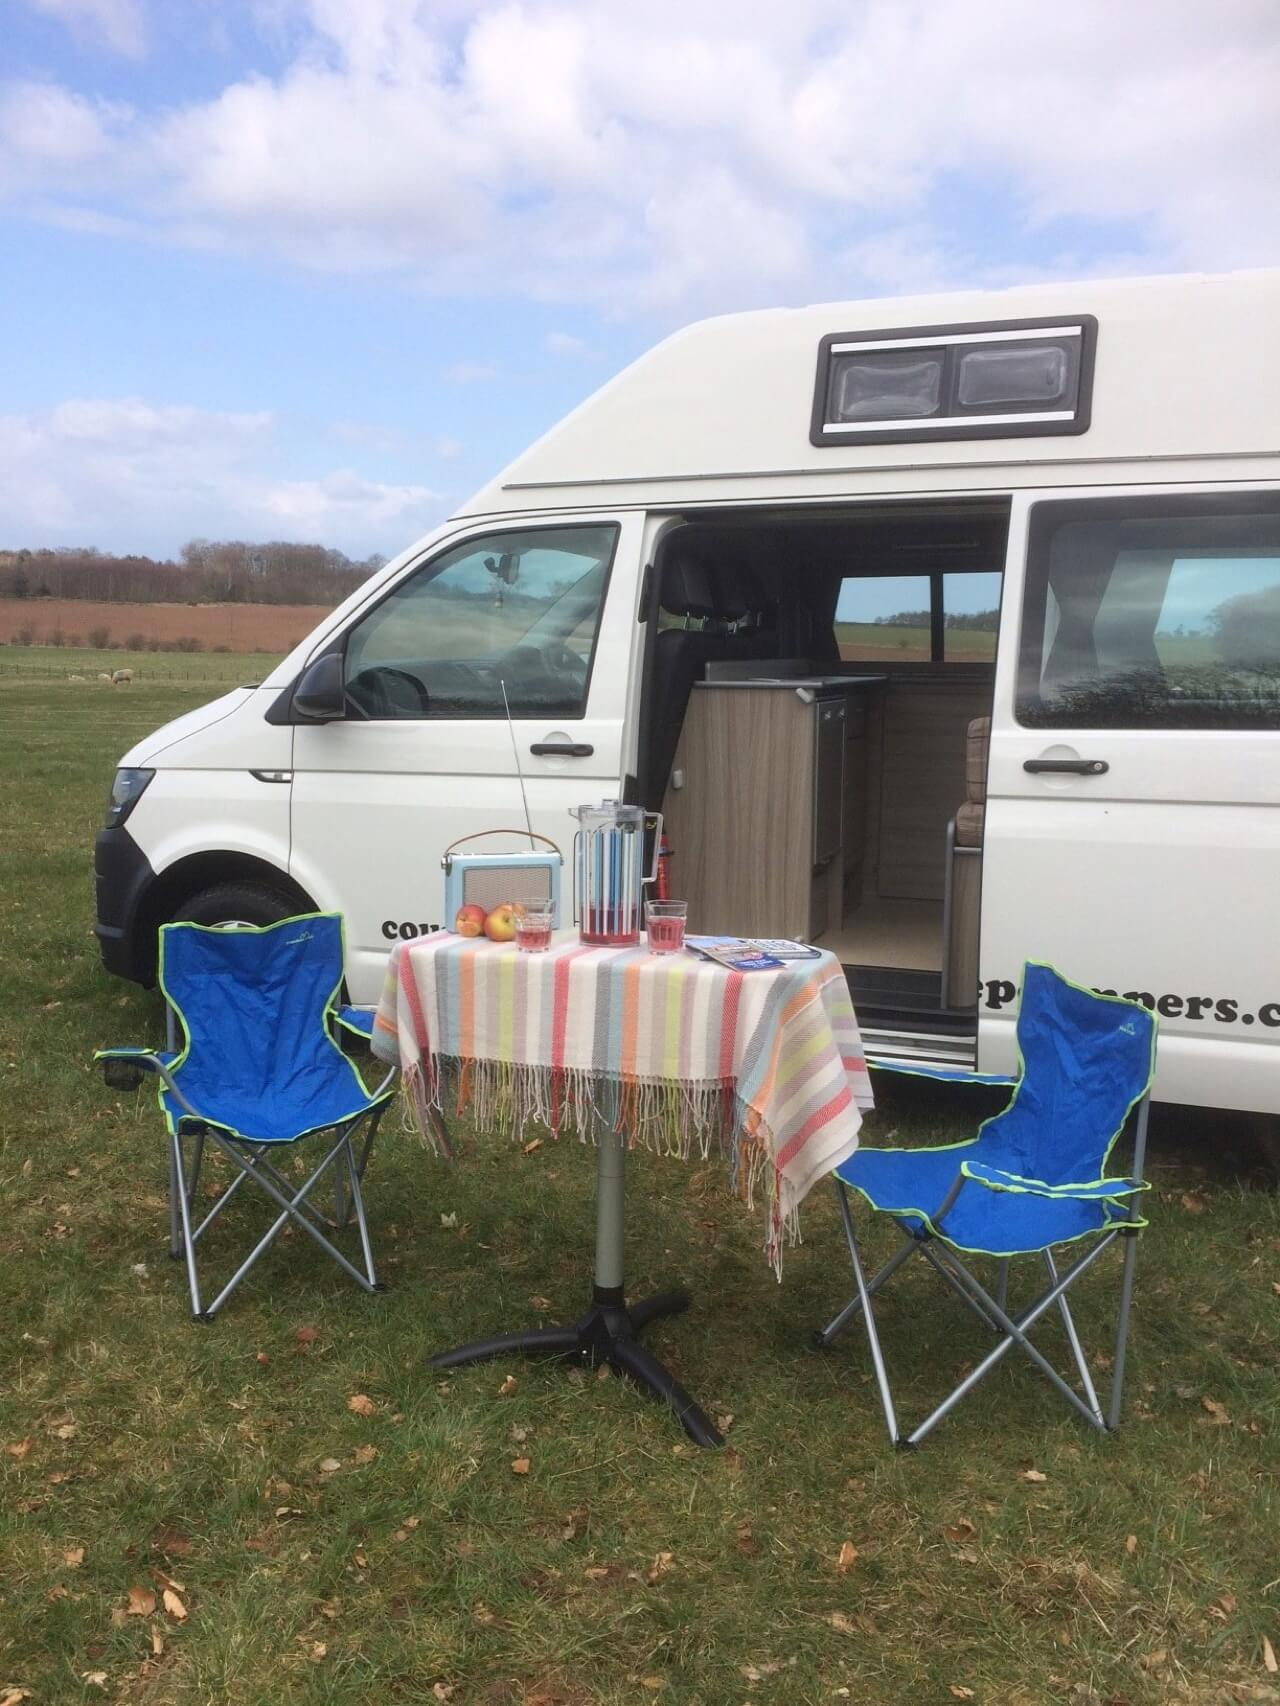 skye with picnic set up motorhome rent